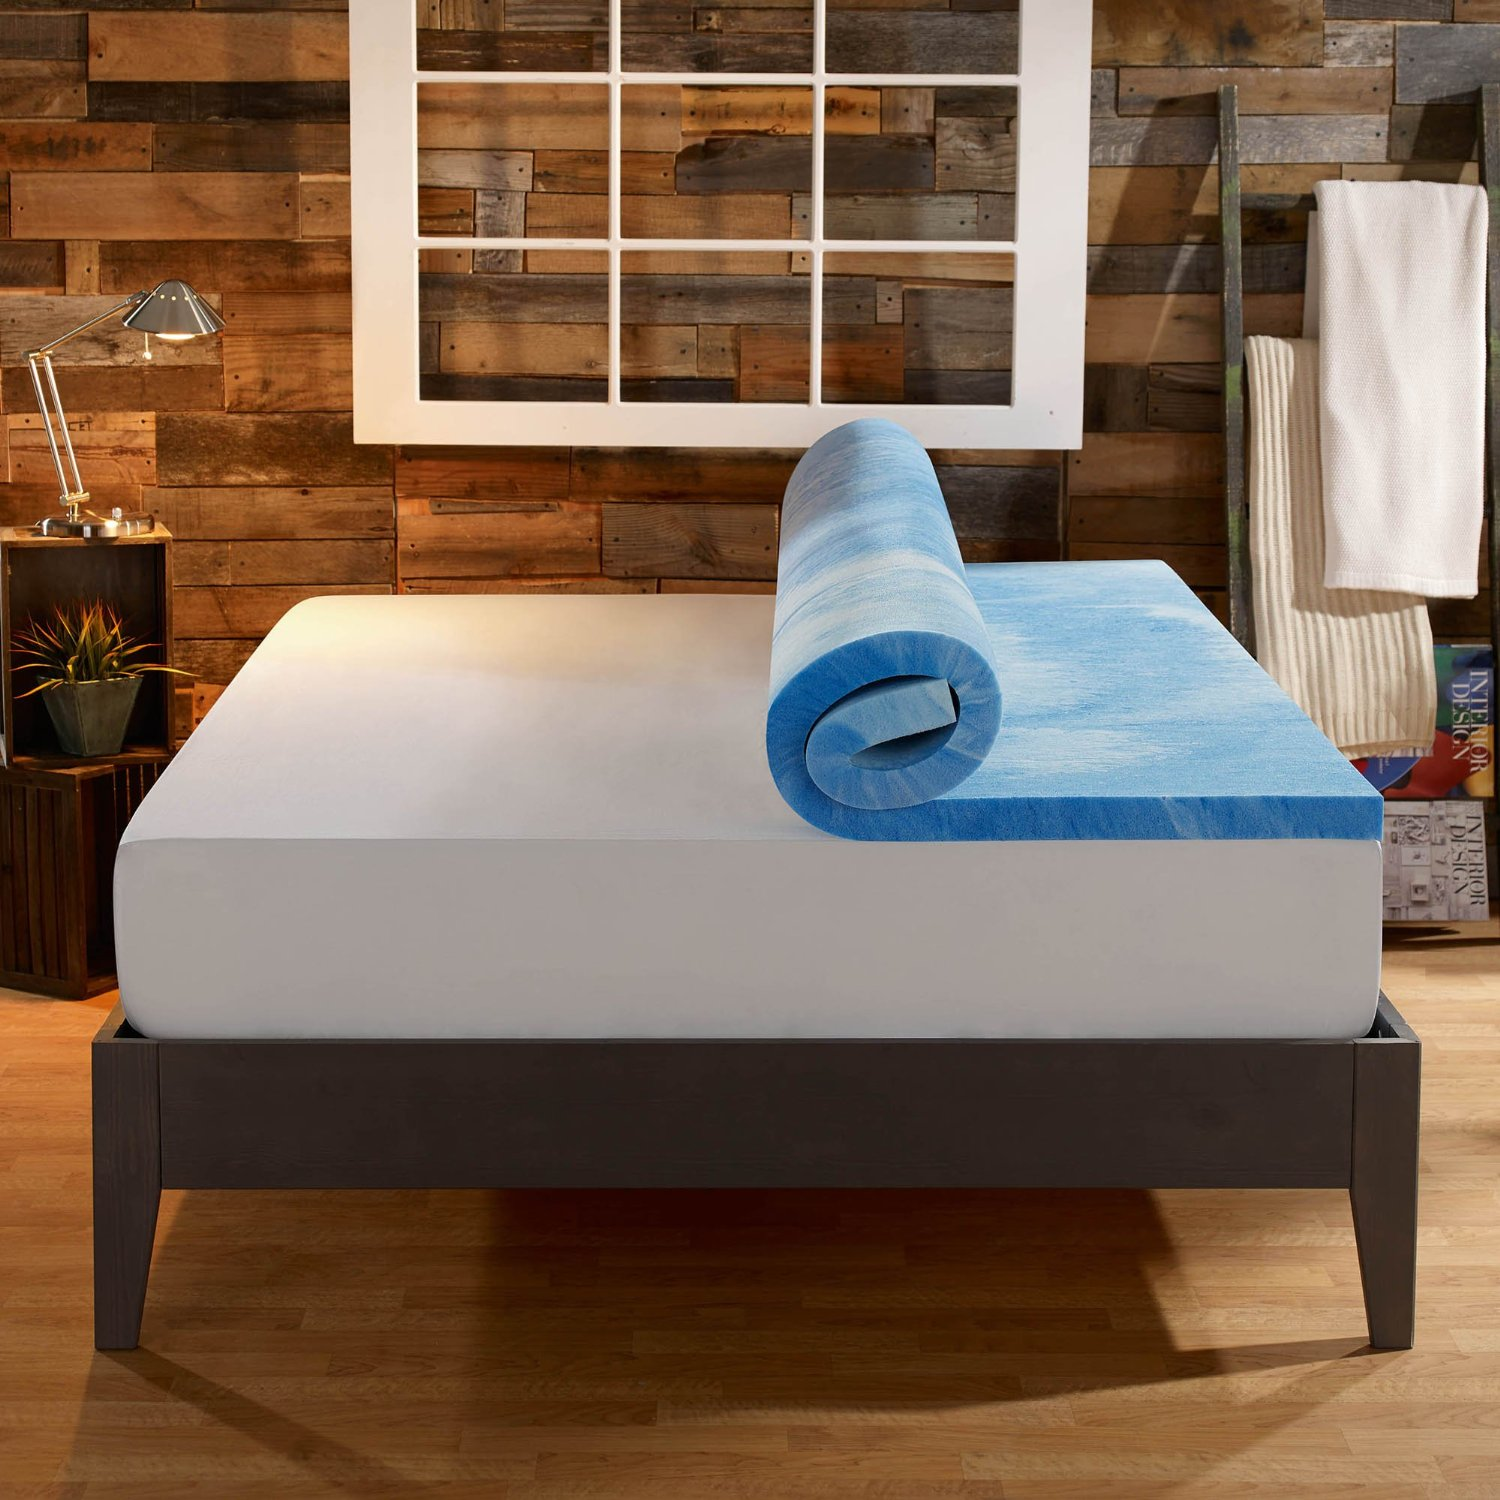 rating s guide buyer is sleep firm and mattress best simple